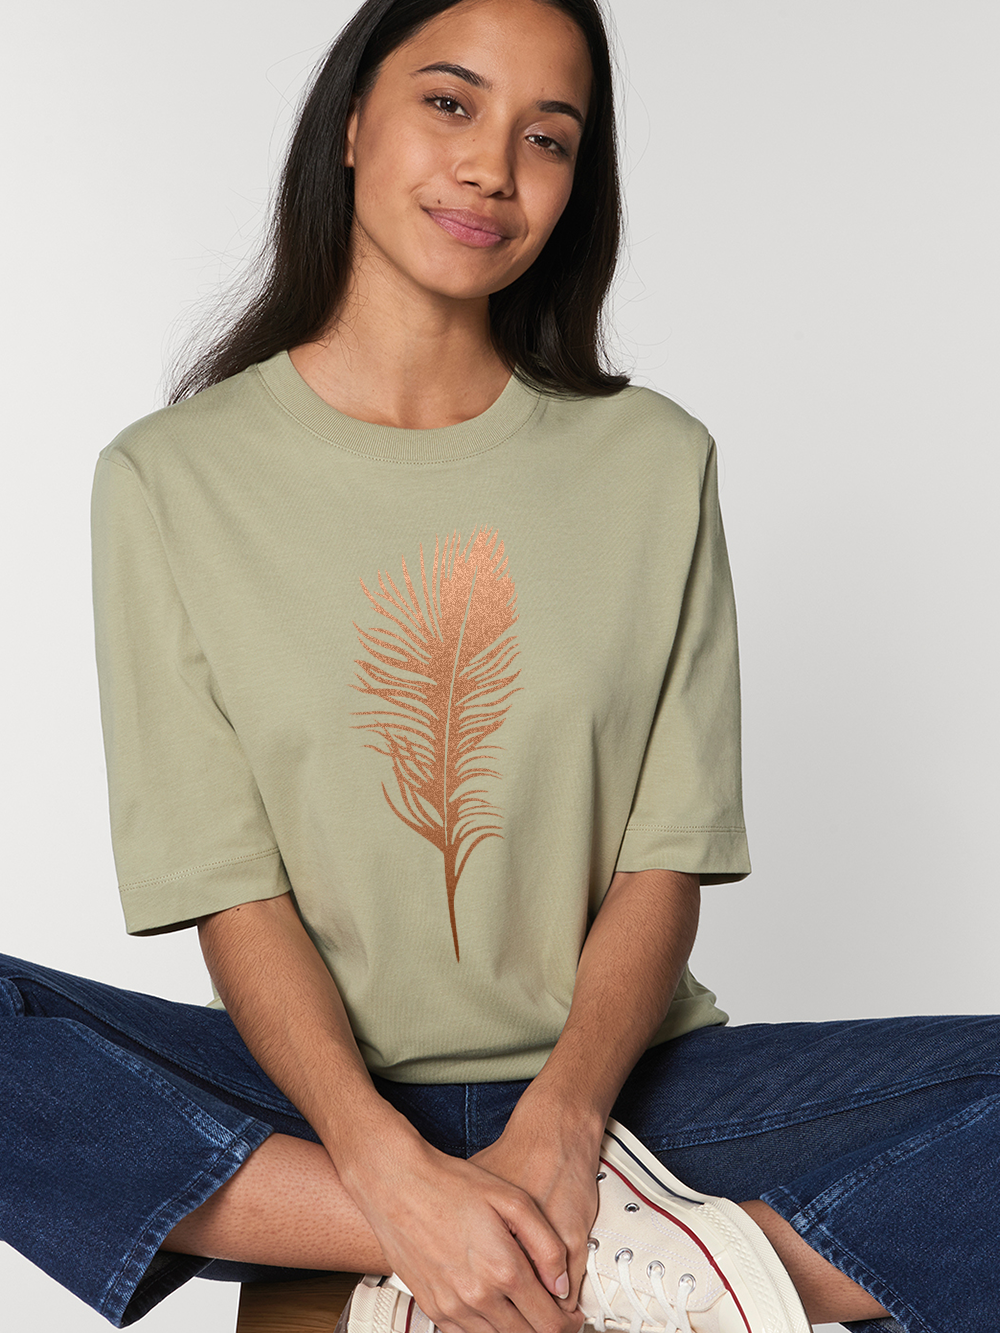 3/4 Length Sleeve Tshirt – Sage Feather